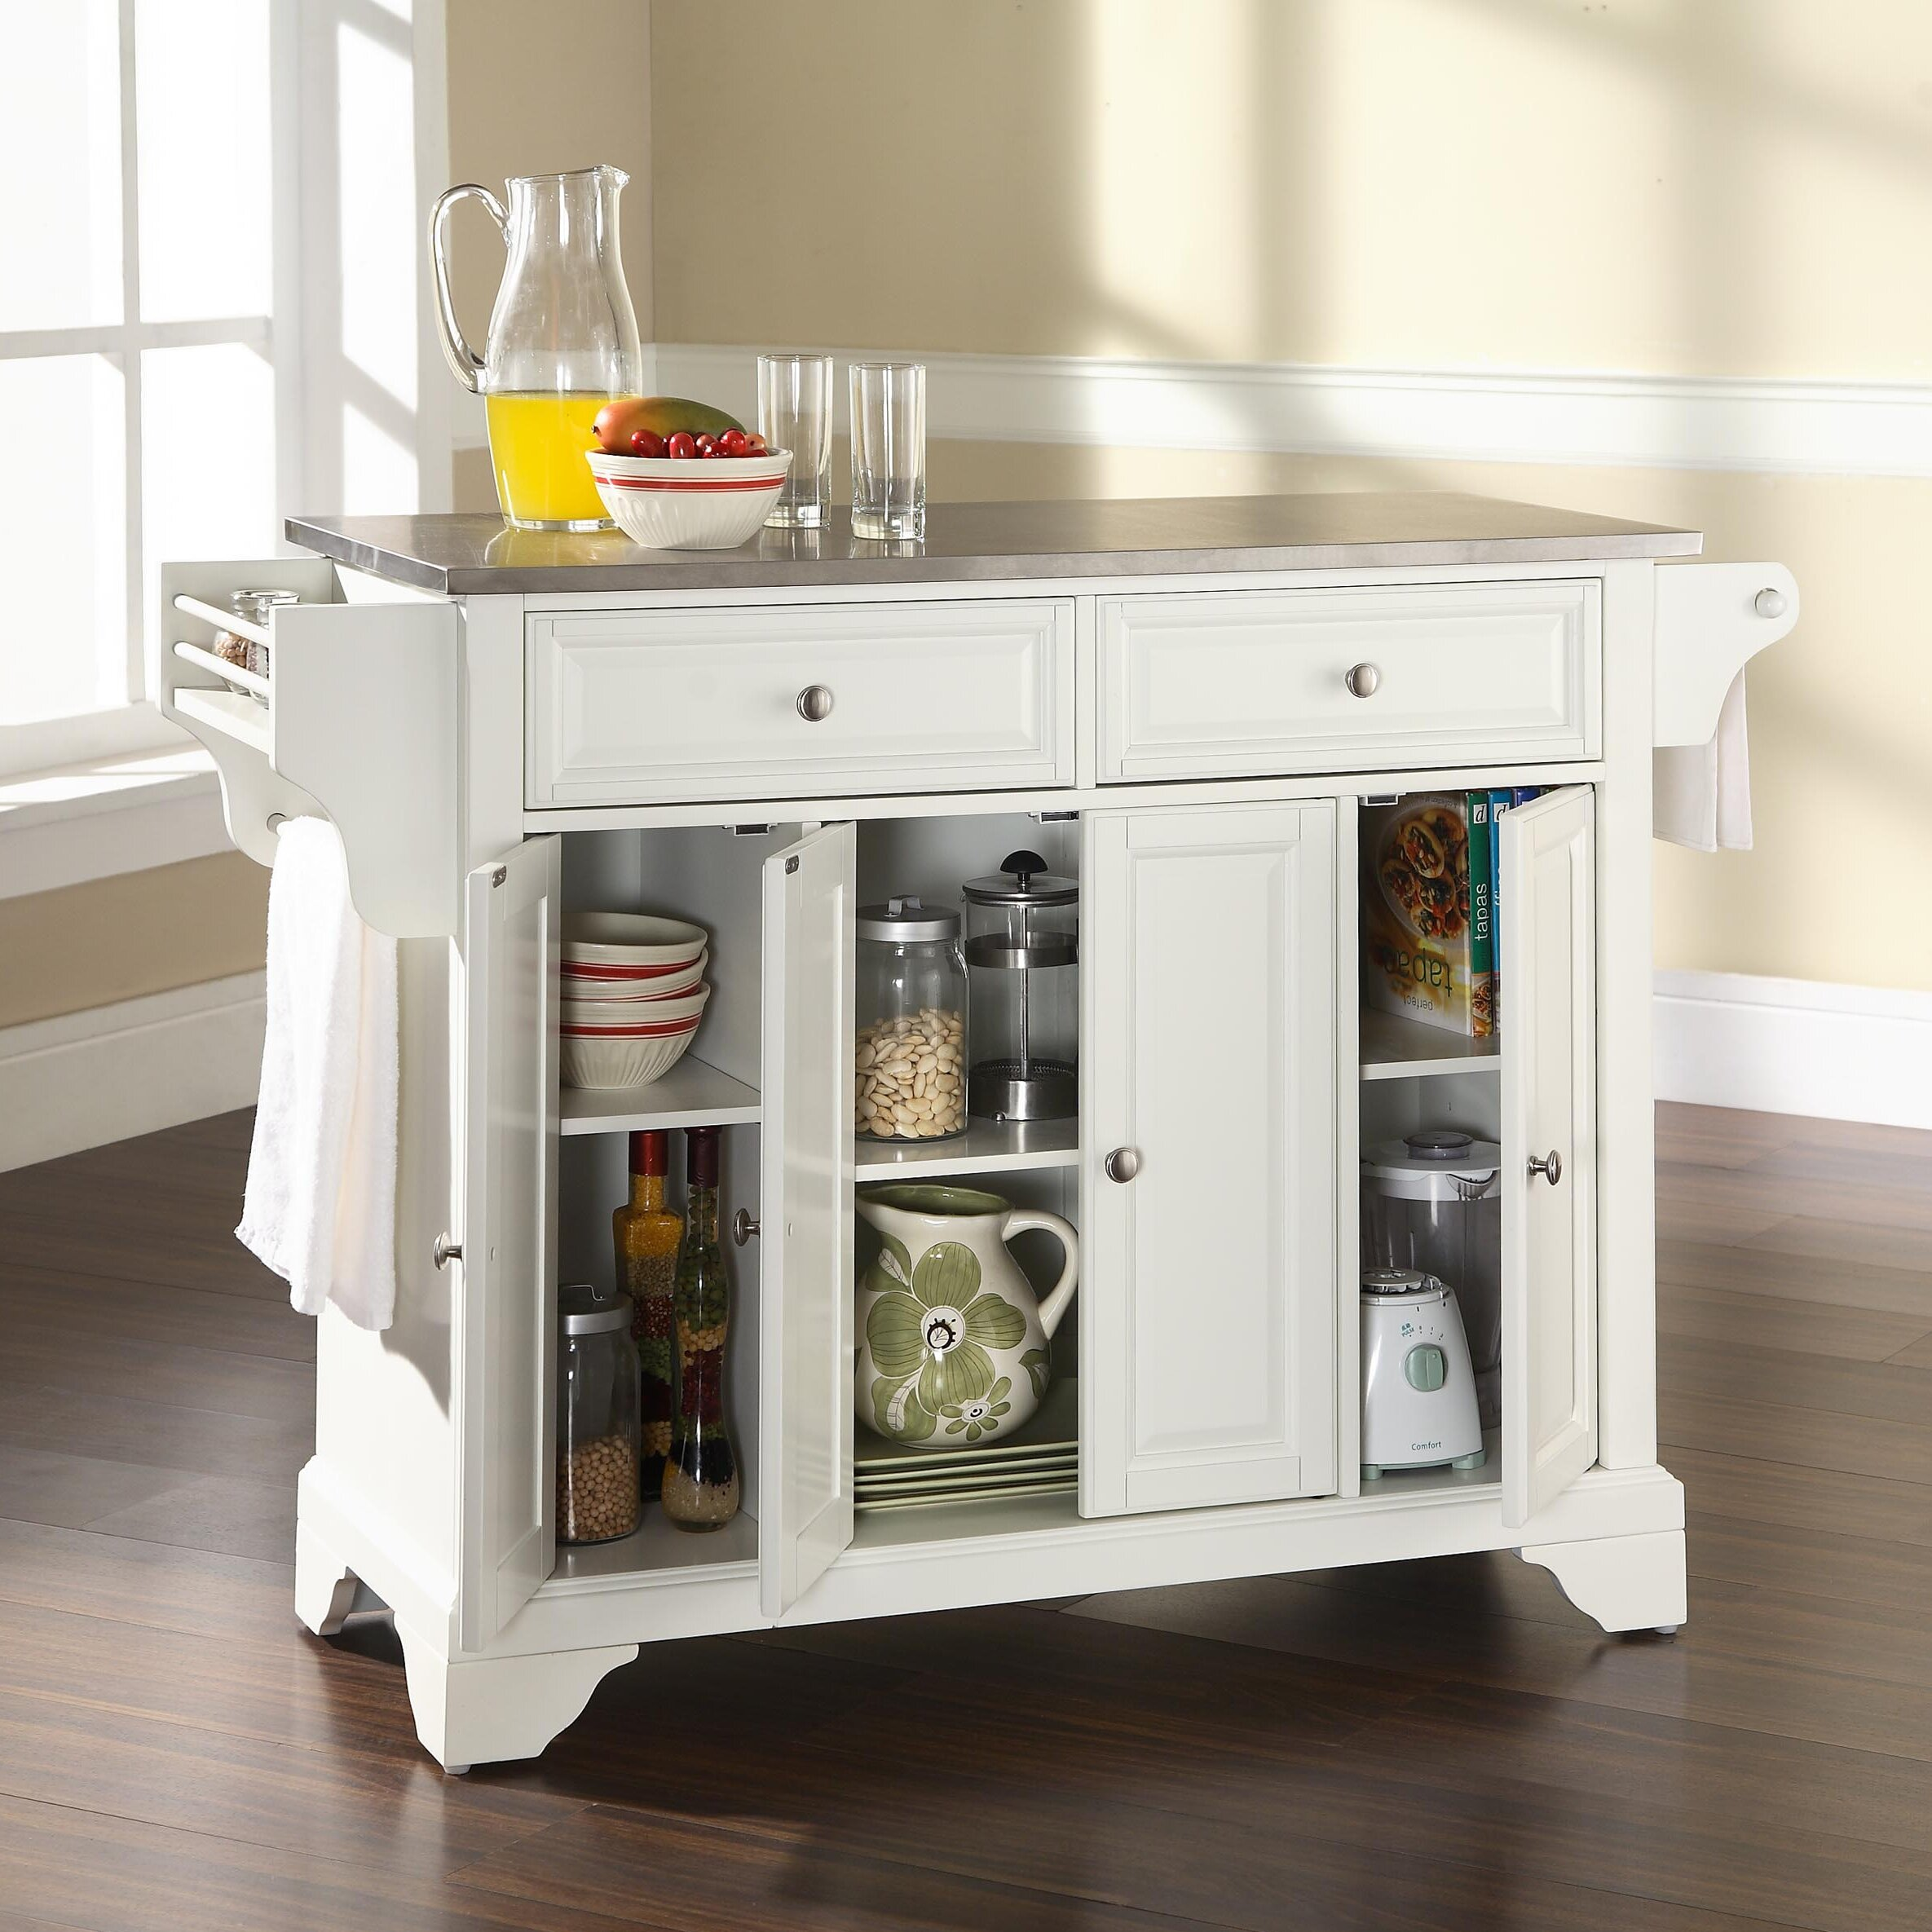 Kitchen Art Lafayette: Crosley LaFayette Kitchen Island With Stainless Steel Top